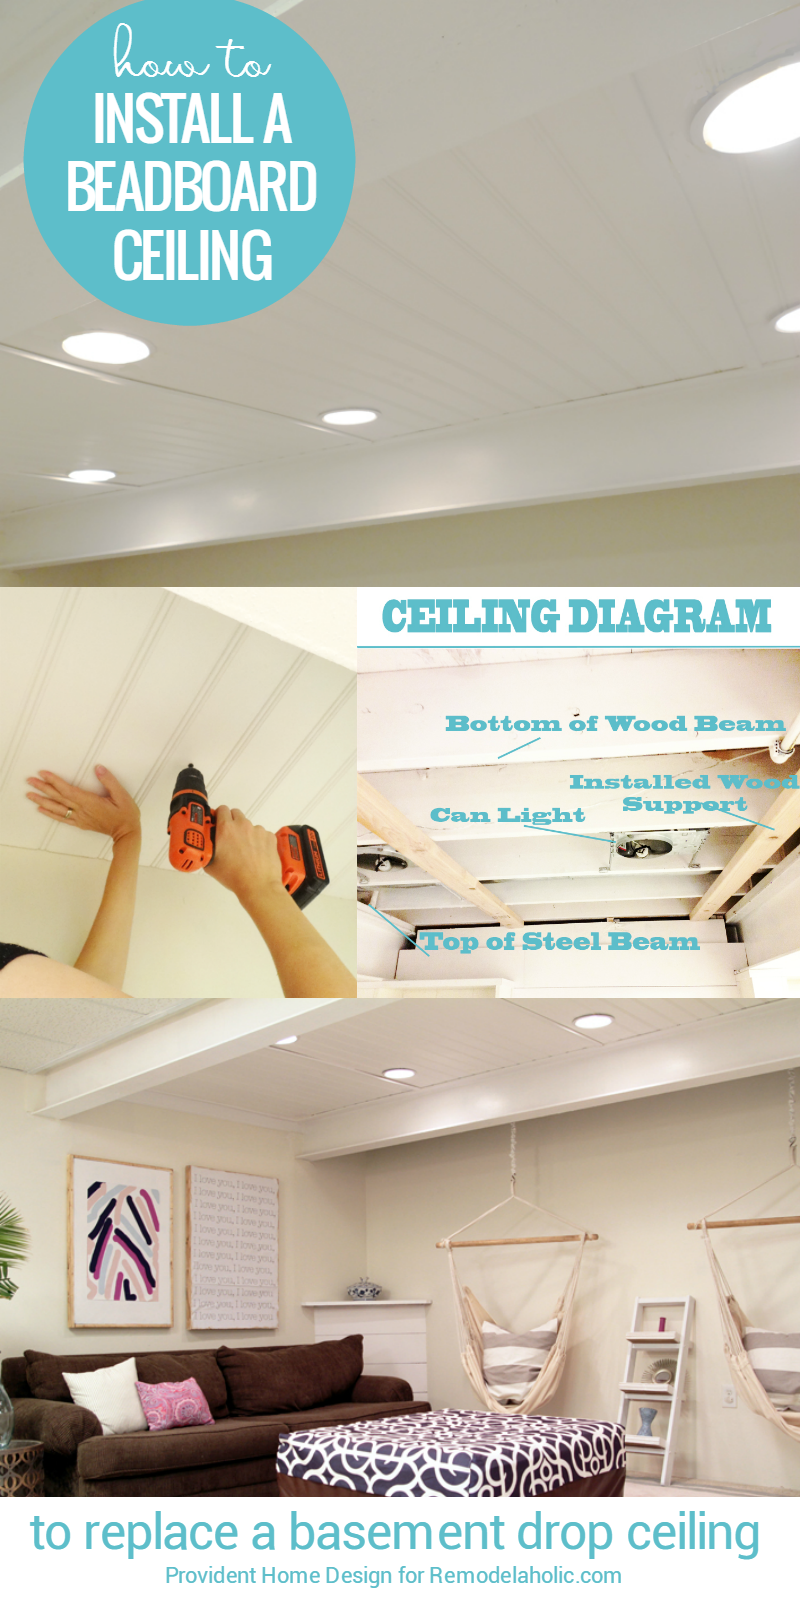 Remodelaholic diy beadboard ceiling to replace a basement drop how to install a basement beadboard ceiling to replace a drop ceiling tutorial from provident dailygadgetfo Image collections